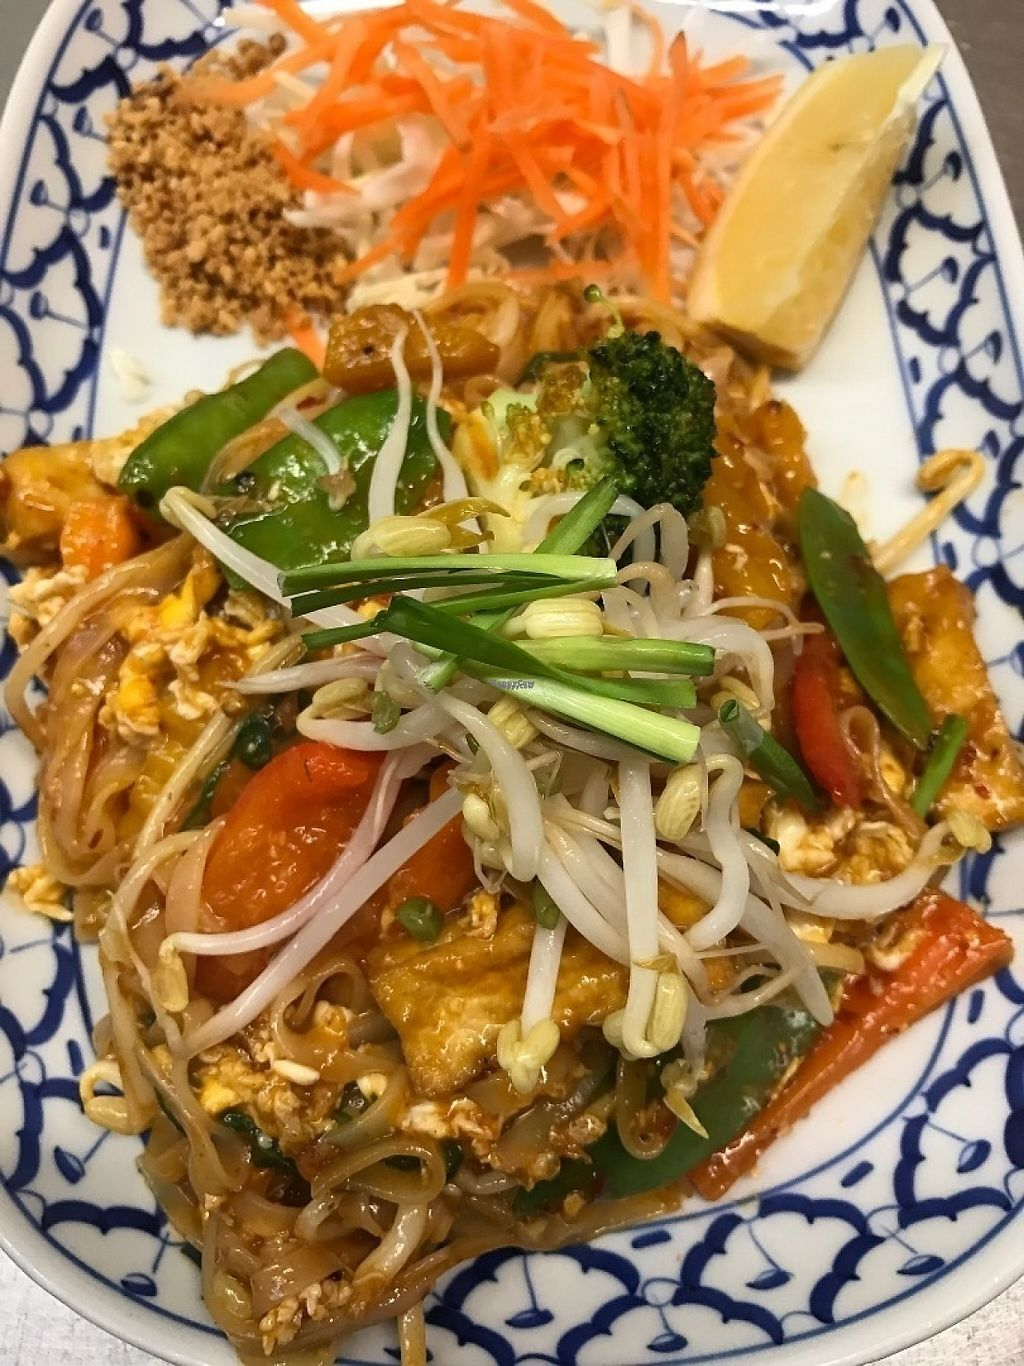 "Photo of Pattaya Thai  by <a href=""/members/profile/PattayaThai"">PattayaThai</a> <br/>Pad Thai veggies and tofu vegetarian, vegan, or gluten free as requested pls ask as requested <br/> February 17, 2017  - <a href='/contact/abuse/image/84843/227685'>Report</a>"